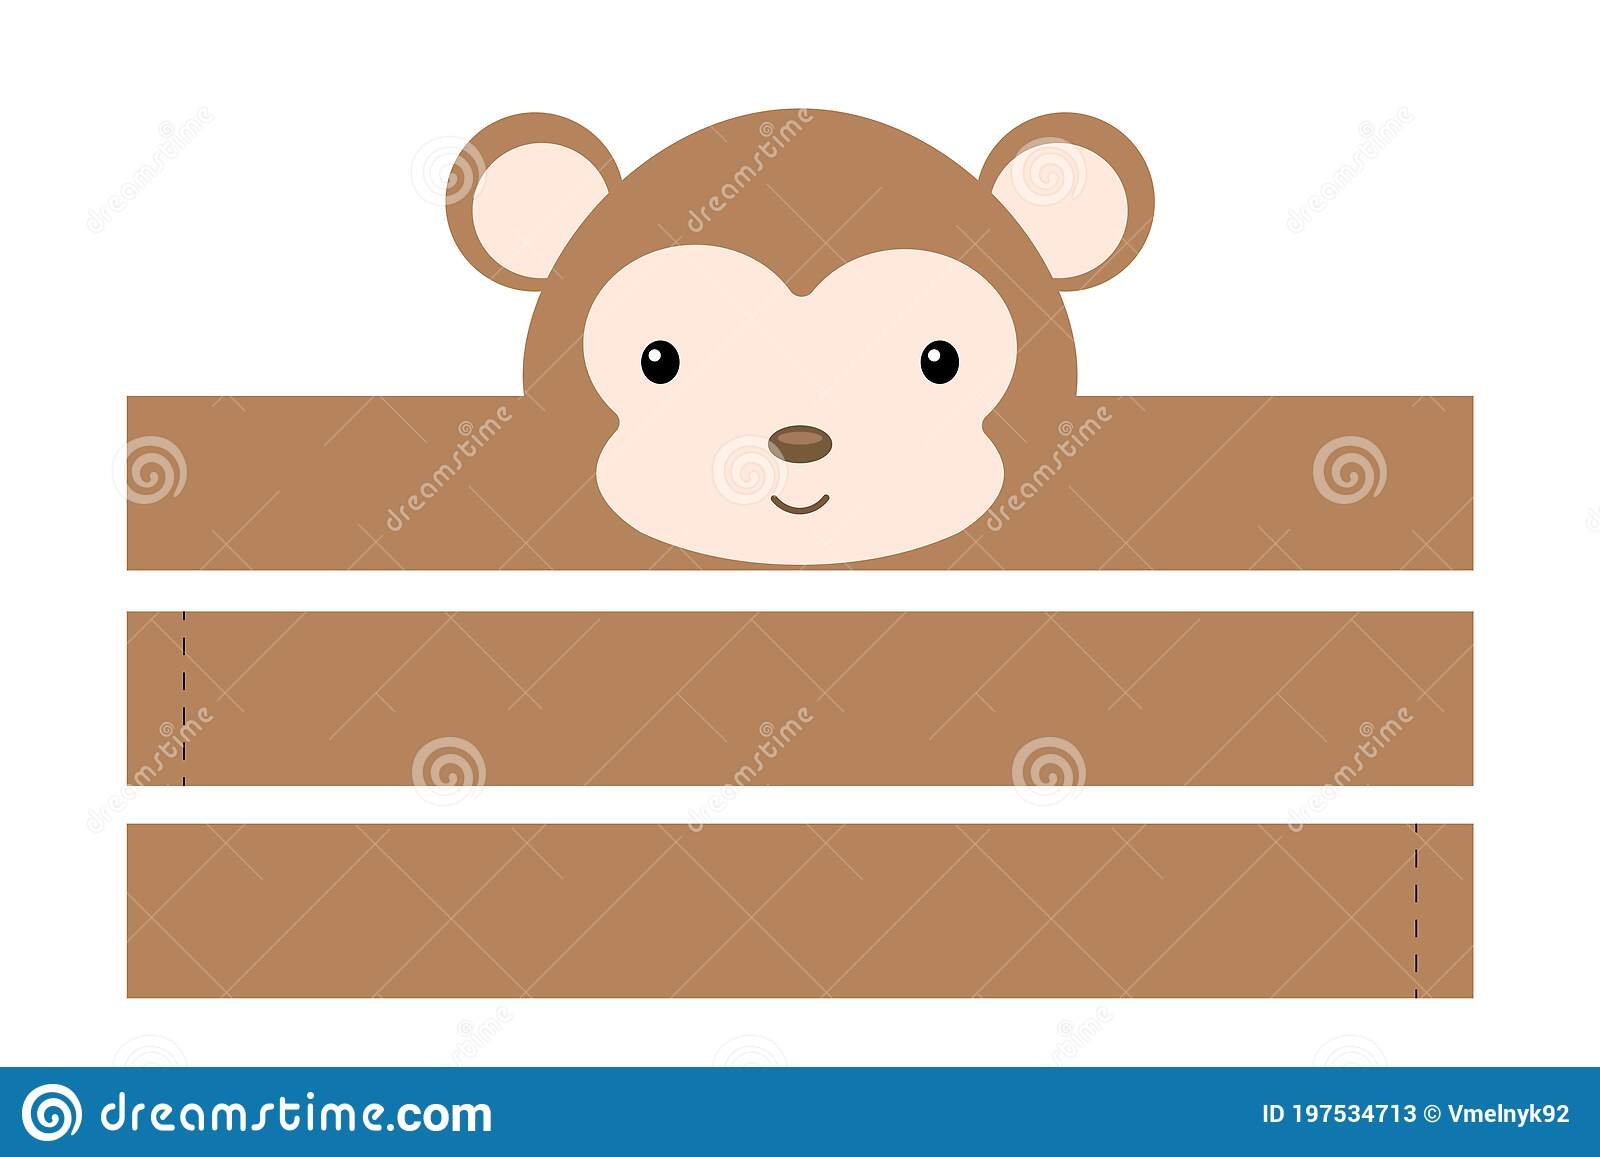 Crown Monkey Stock Illustrations 334 Crown Monkey Stock Illustrations Vectors Clipart Dreamstime Cute funny cartoon baby monkey clip art images. dreamstime com